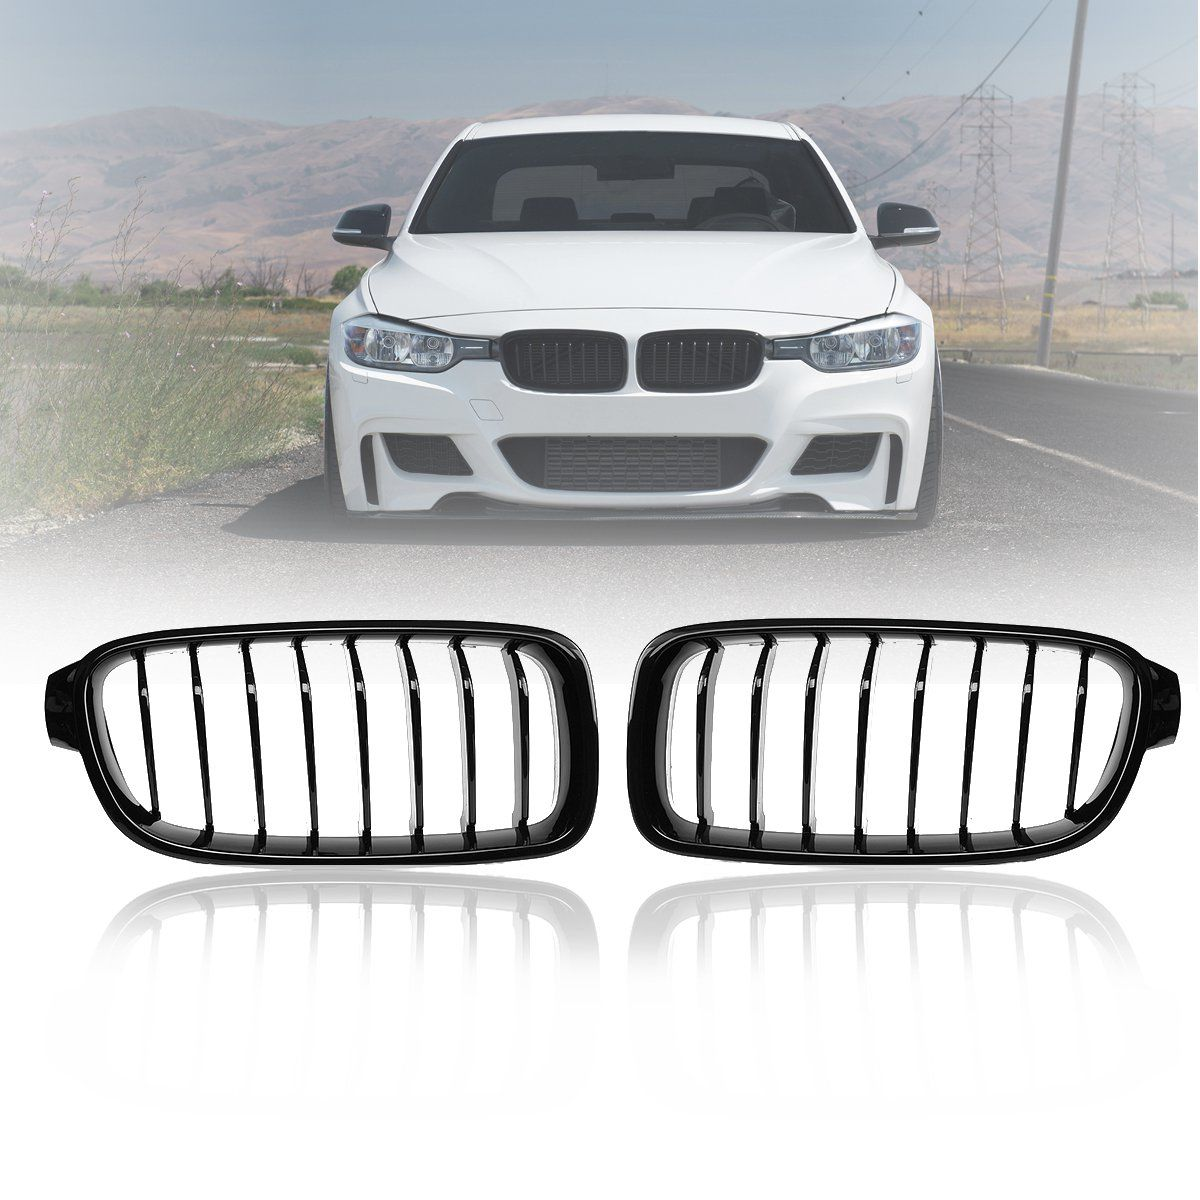 Pair Gloss Matt Carbon Black 3 Color Front Kidney Grille For BMW 3 Series F30 F31 F35 F80 2012 2013-2017 Racing Grills